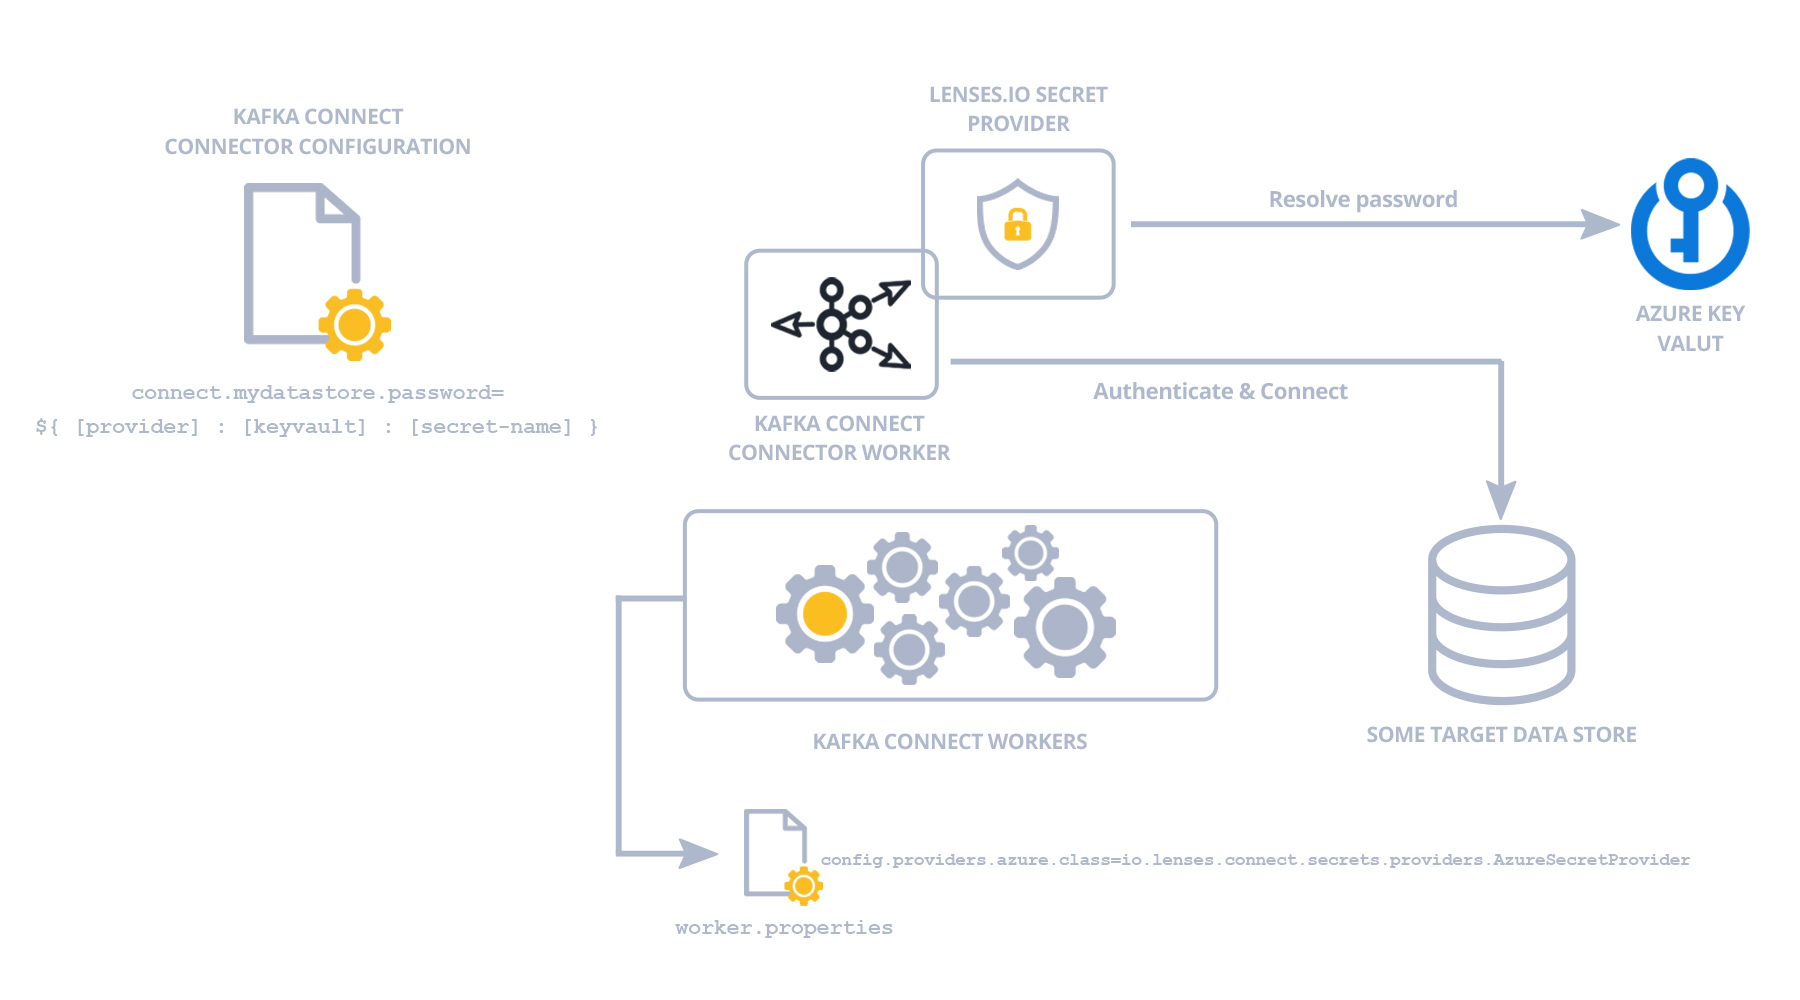 Azure Key Vault secret management of Kafka Connect connectors